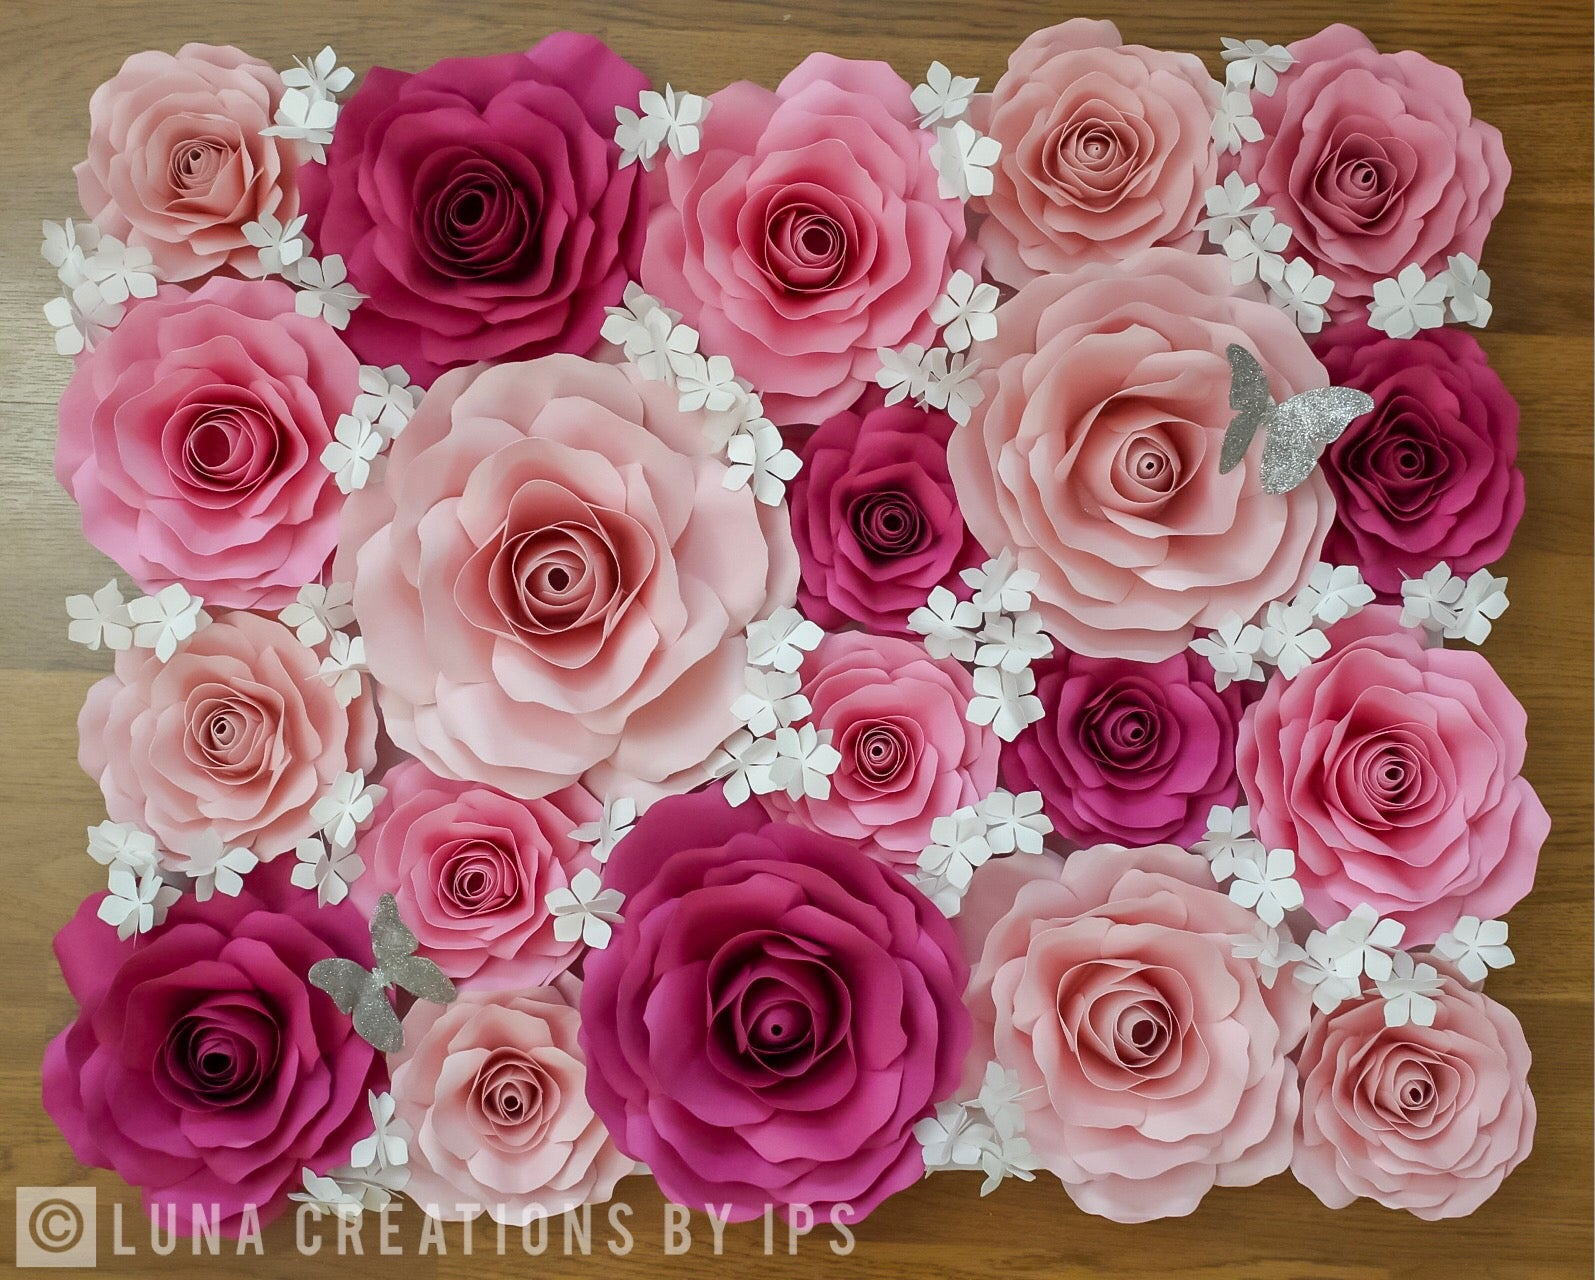 Paper Roses Flower Panelwall Luna Creations By Ips